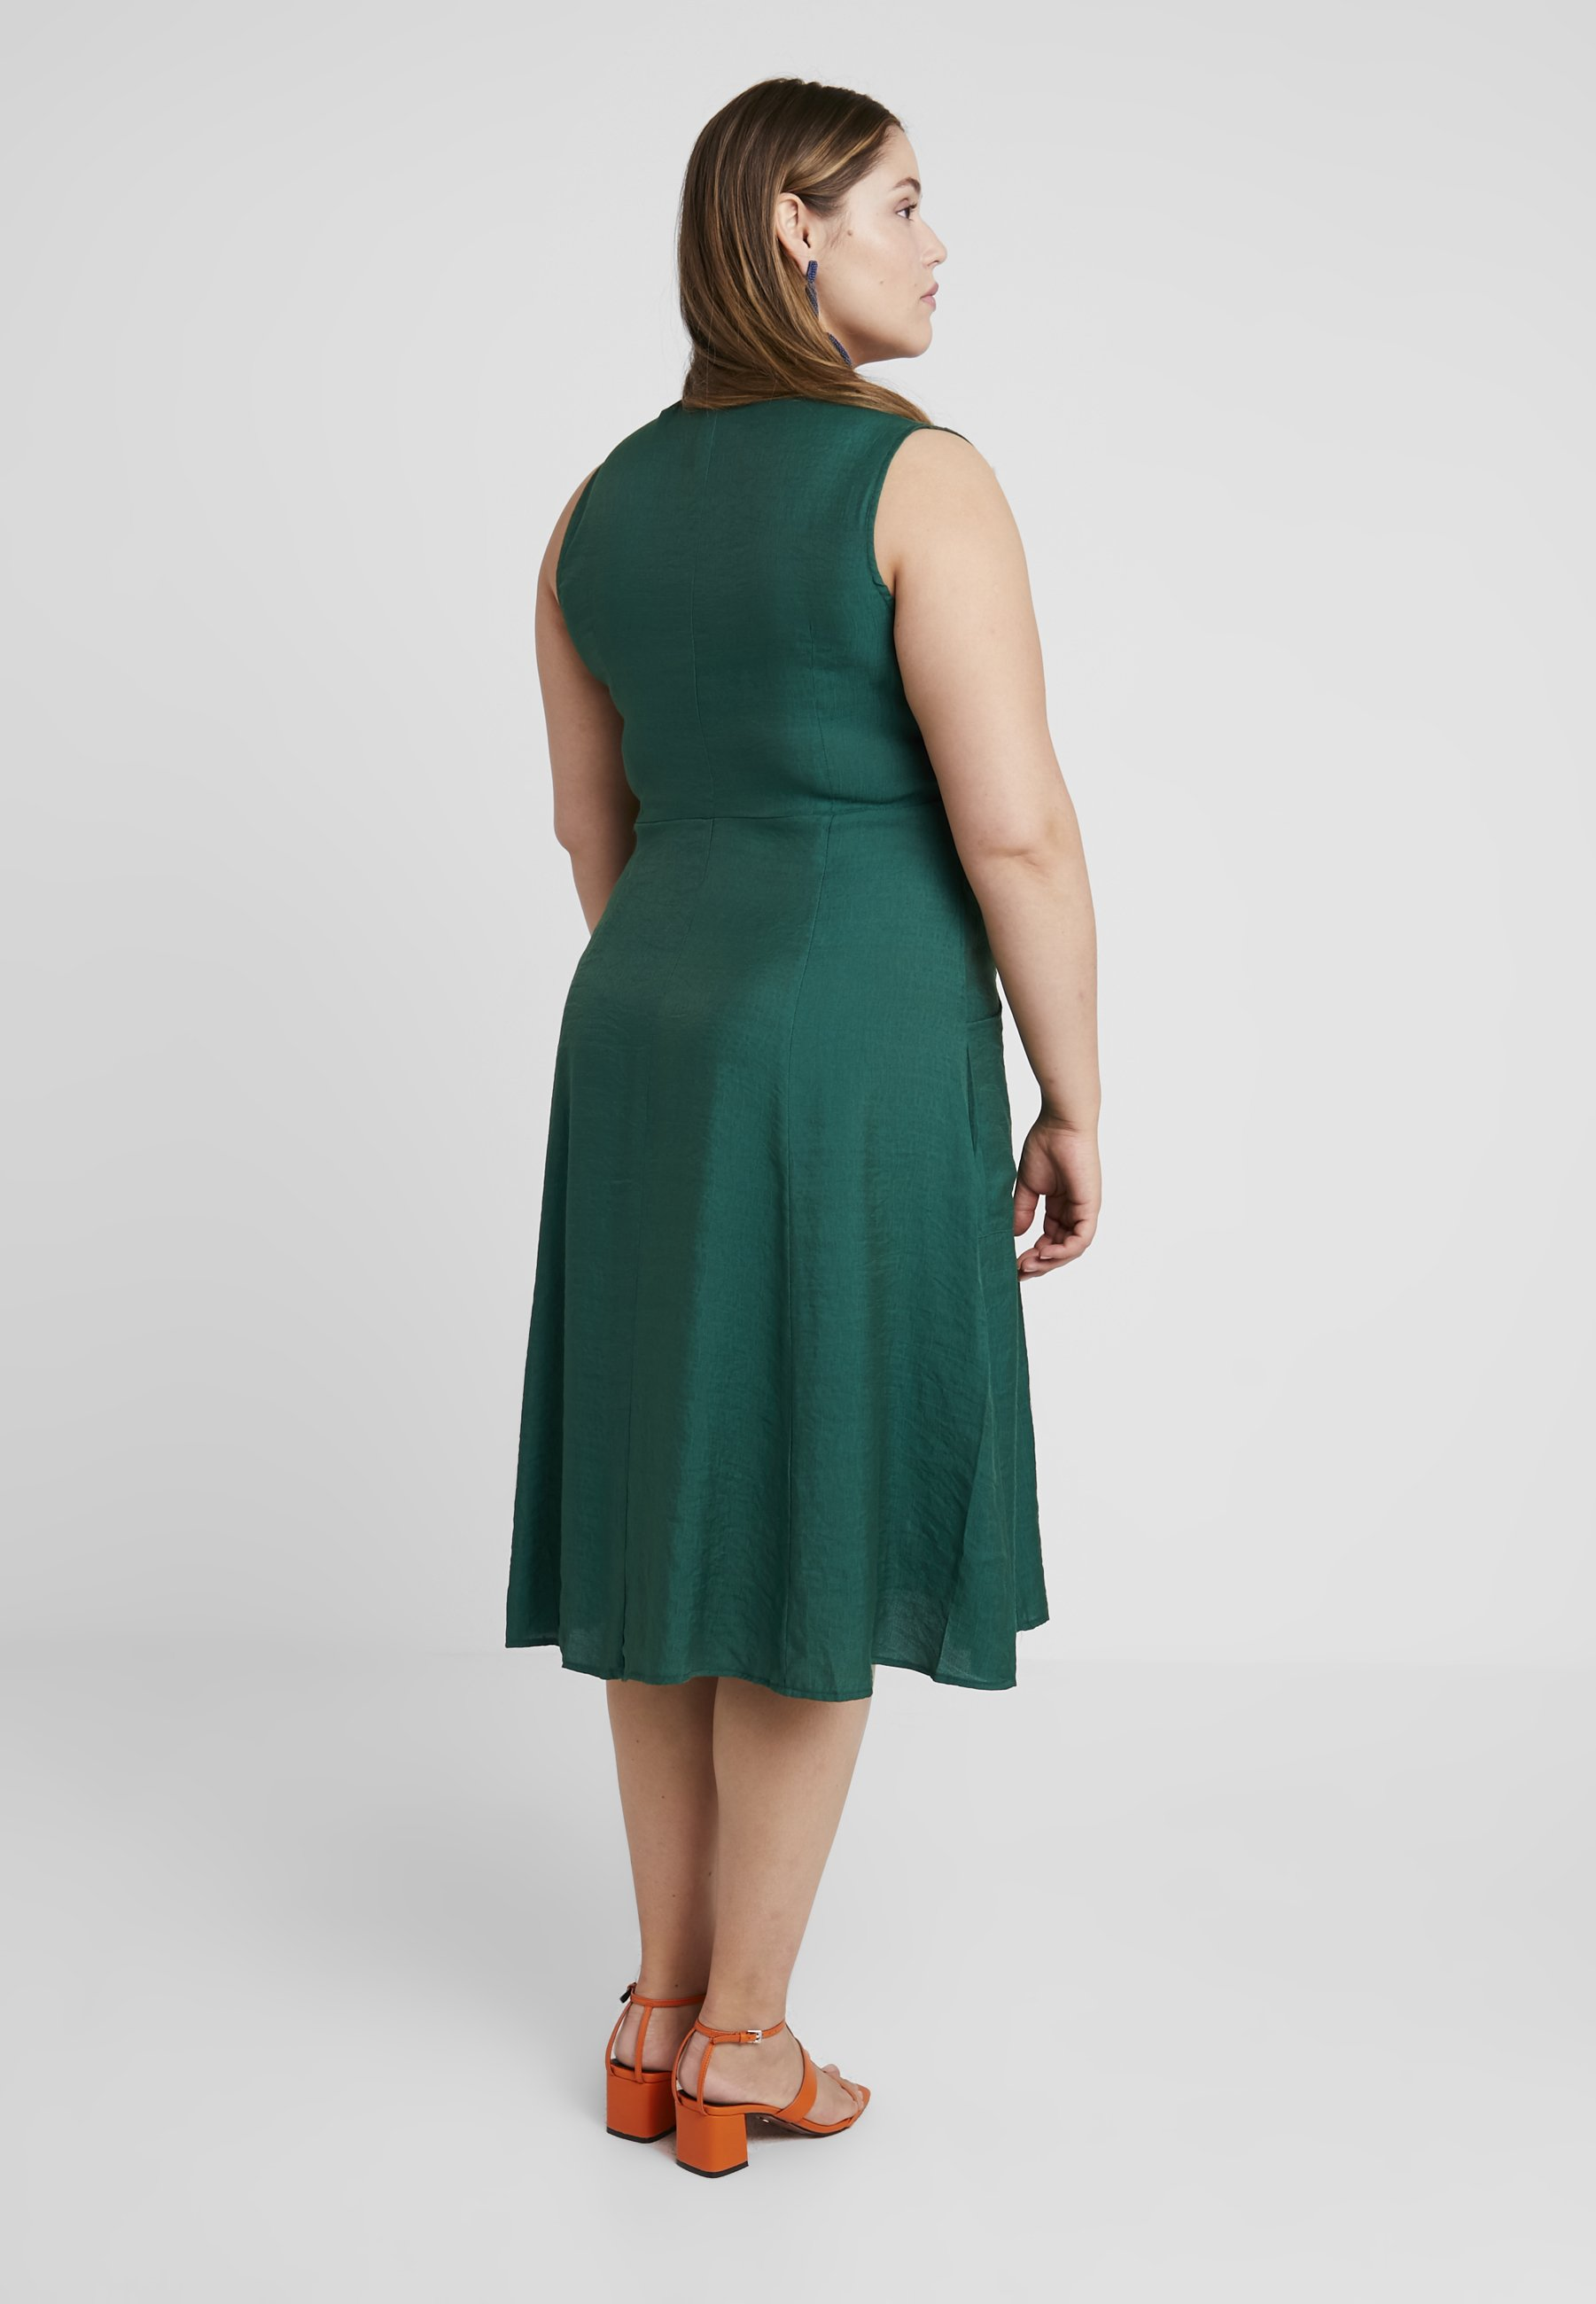 Sleeveless Vneck With Chemise Curve PocketsRobe Button Glamorous Dress Forest Green sQdhrCt